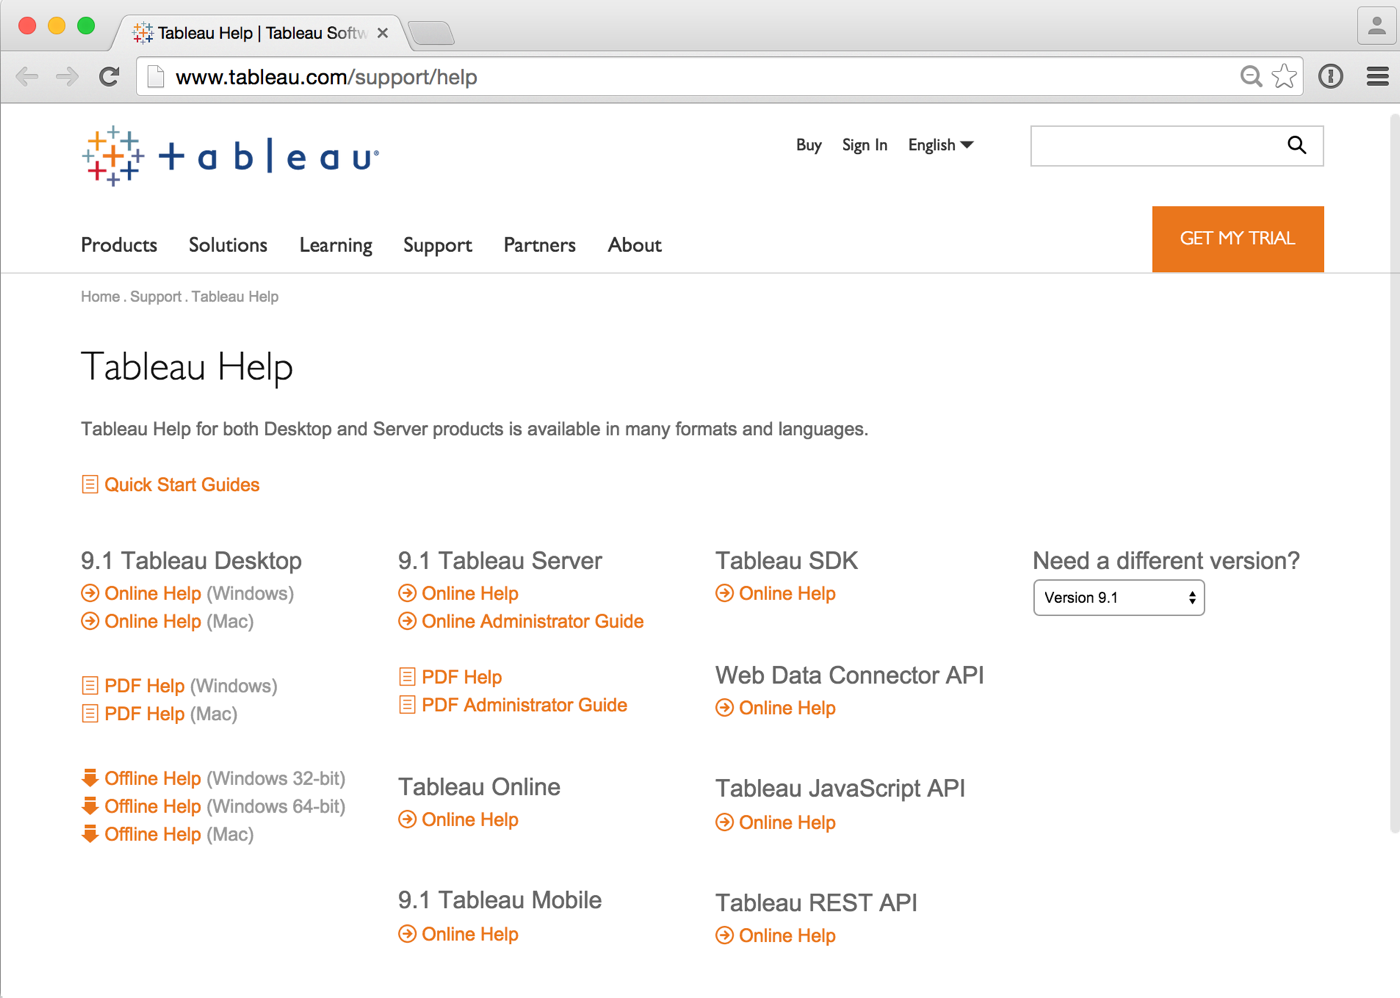 tableau-91-released_01